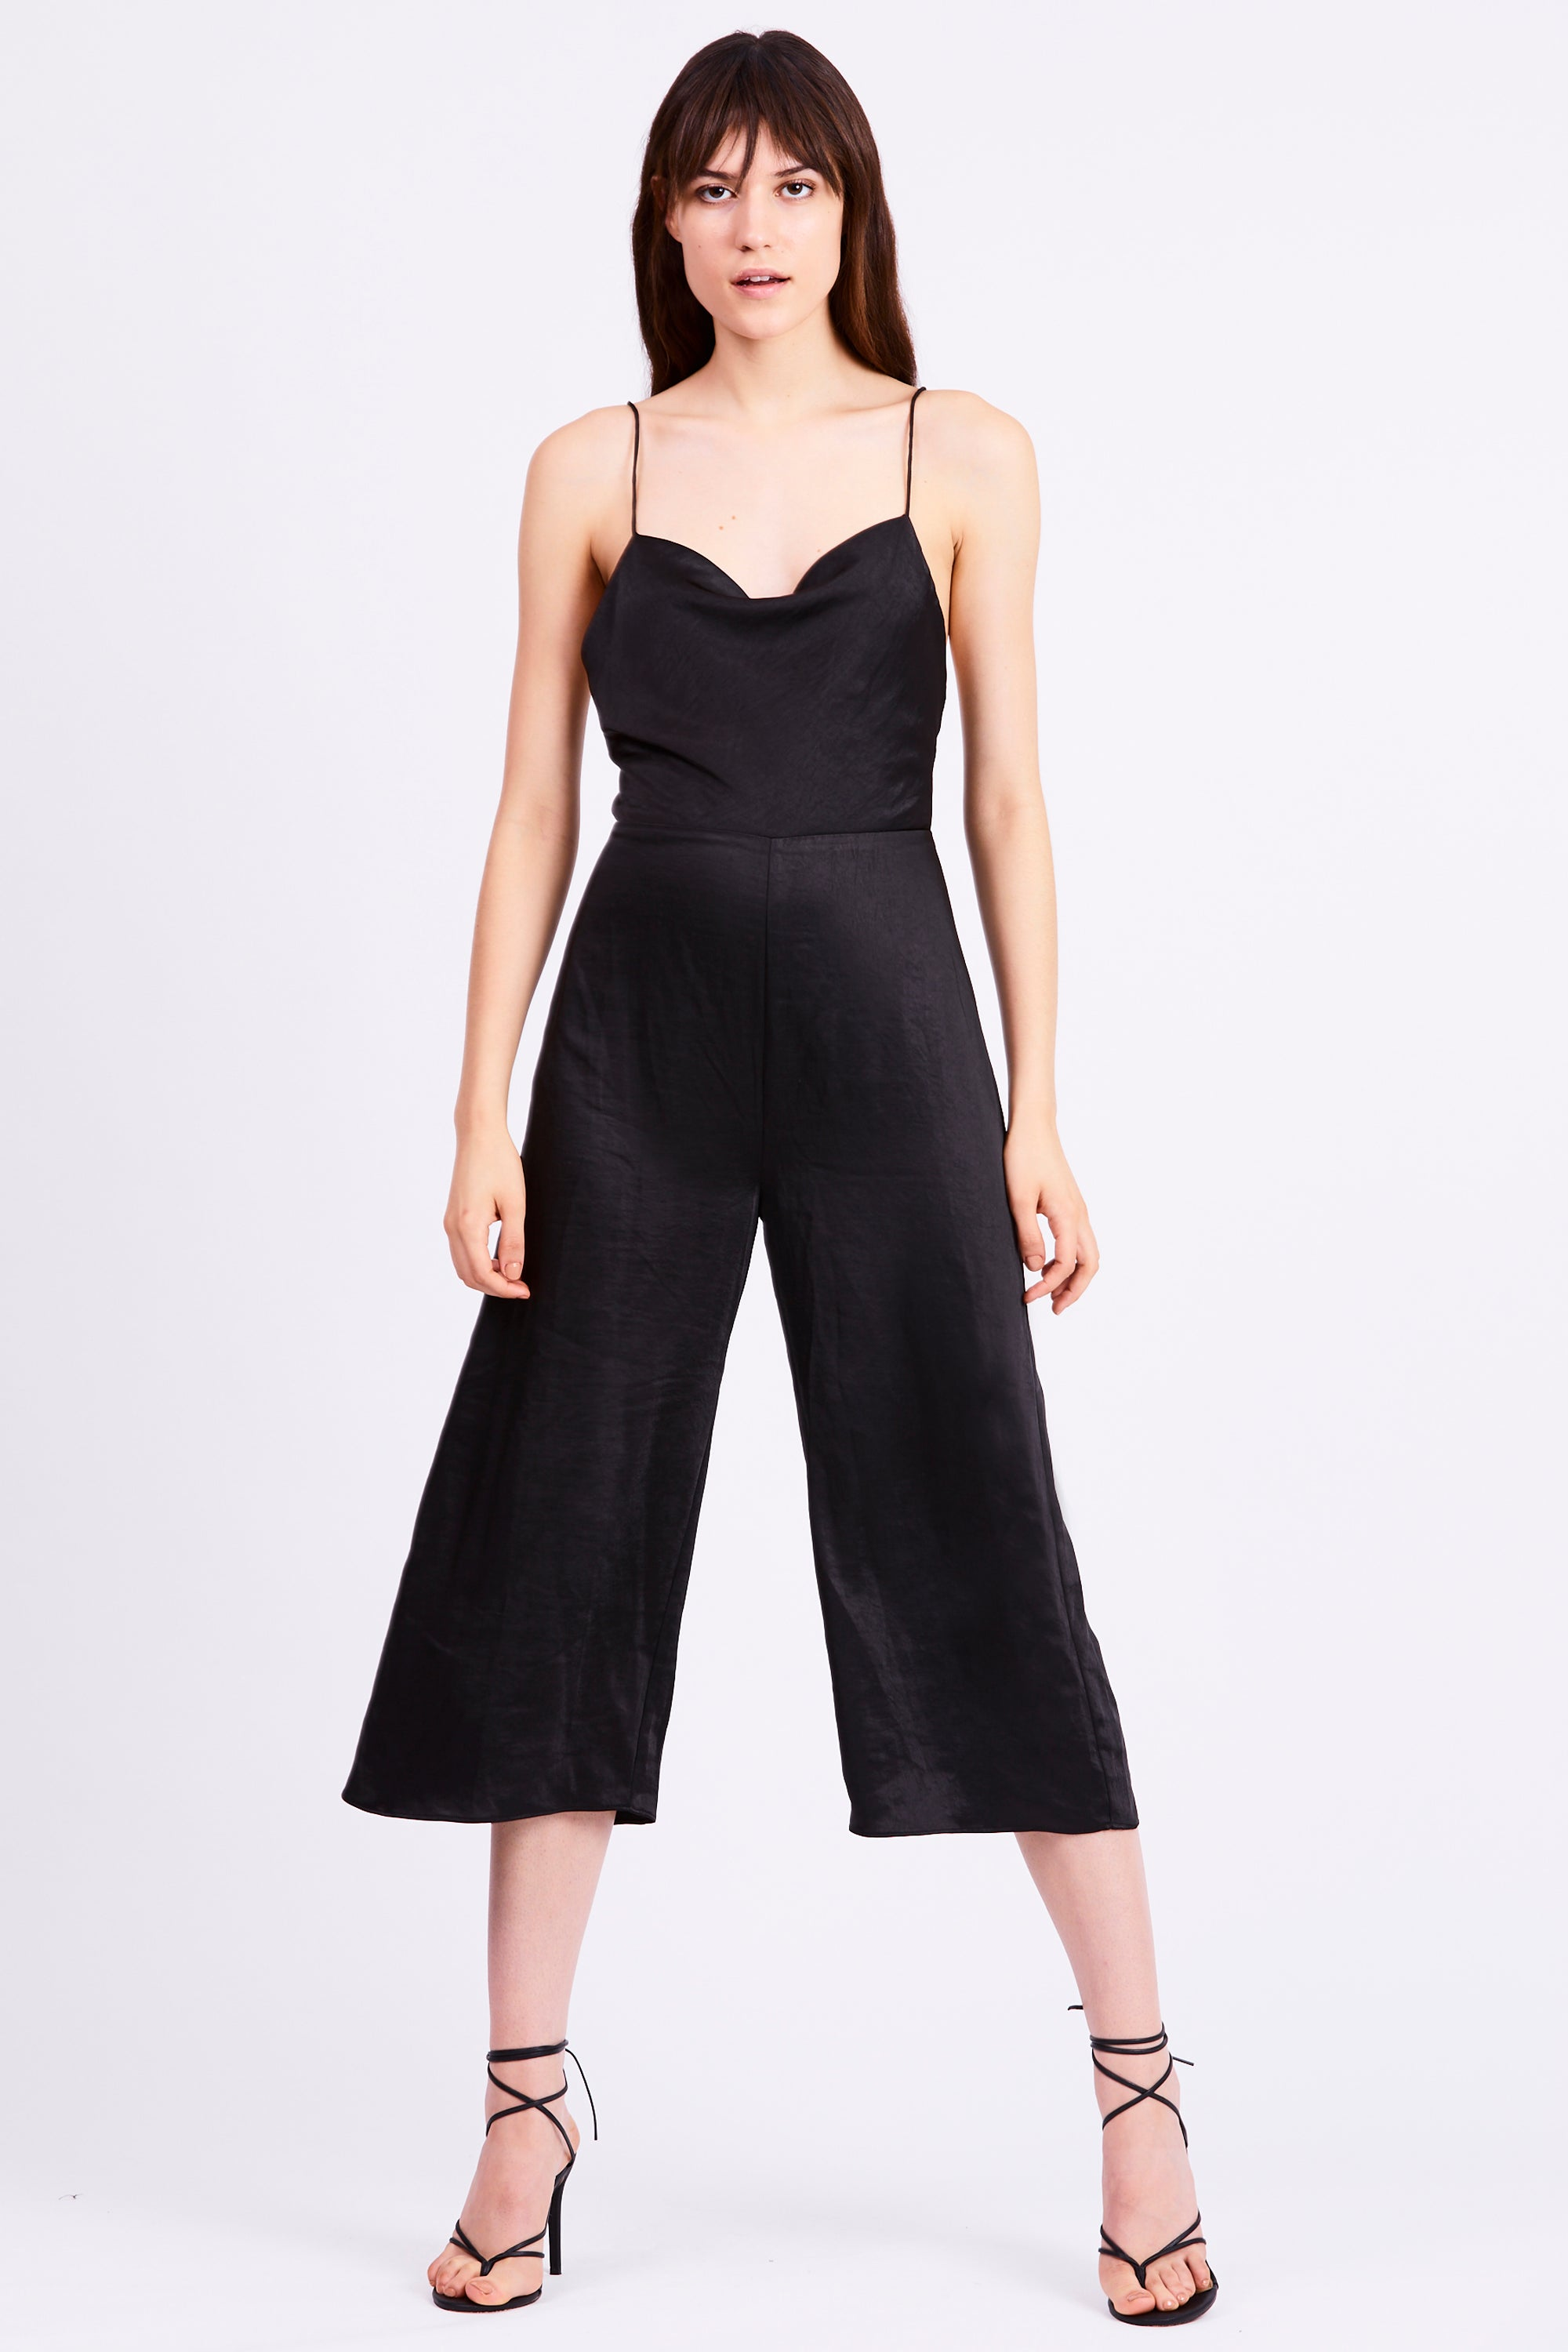 FINAL SAY BIAS JUMPSUIT | BLACK